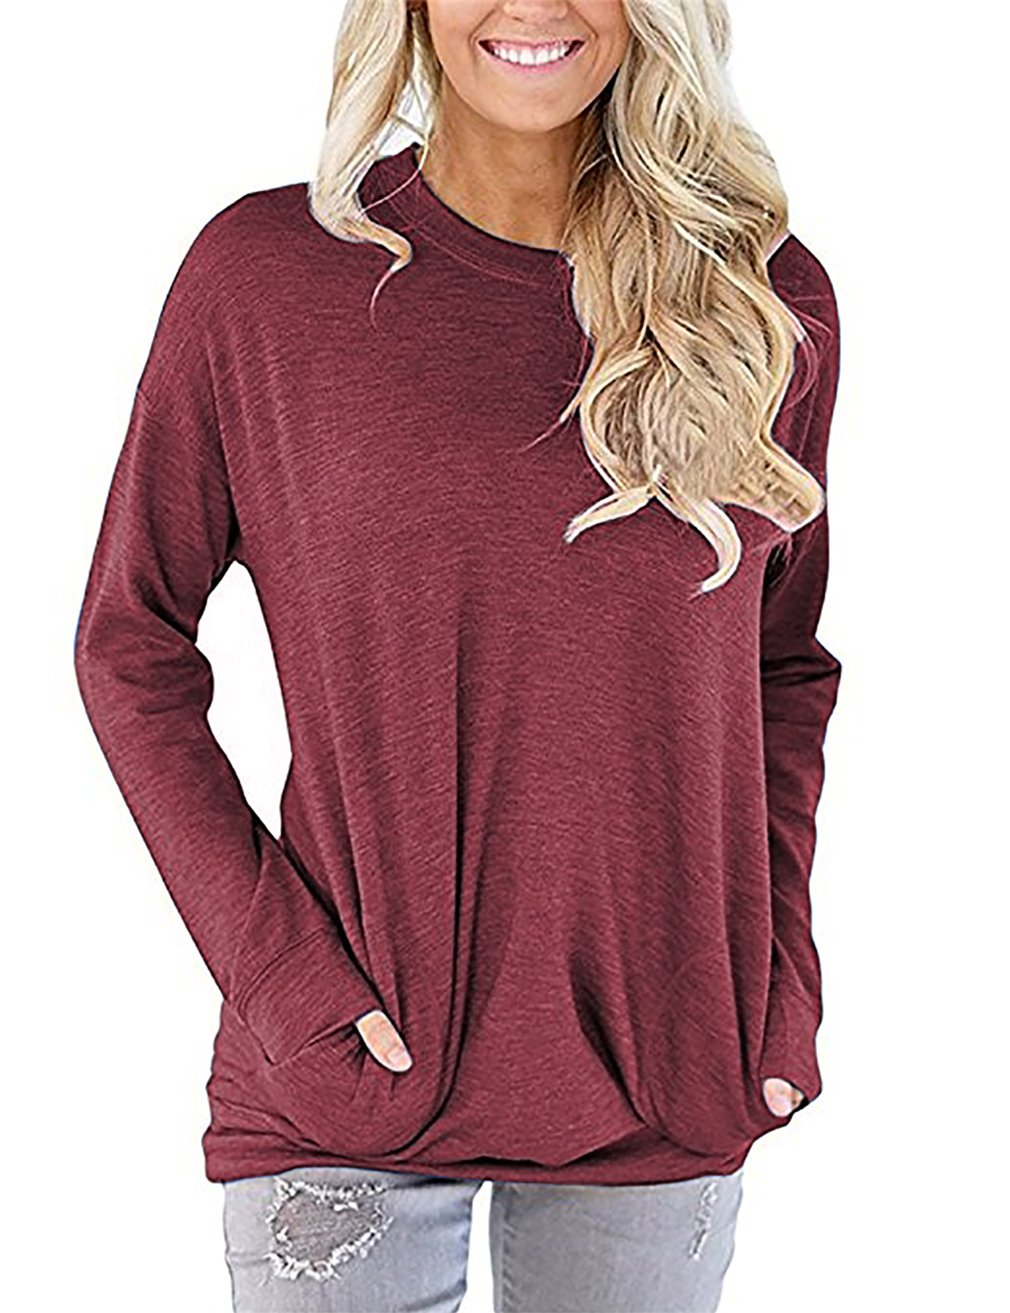 UXELY Banded Hem Tops for Women, Solid Color Tunic Shirt with Pockets,Wine Red XL